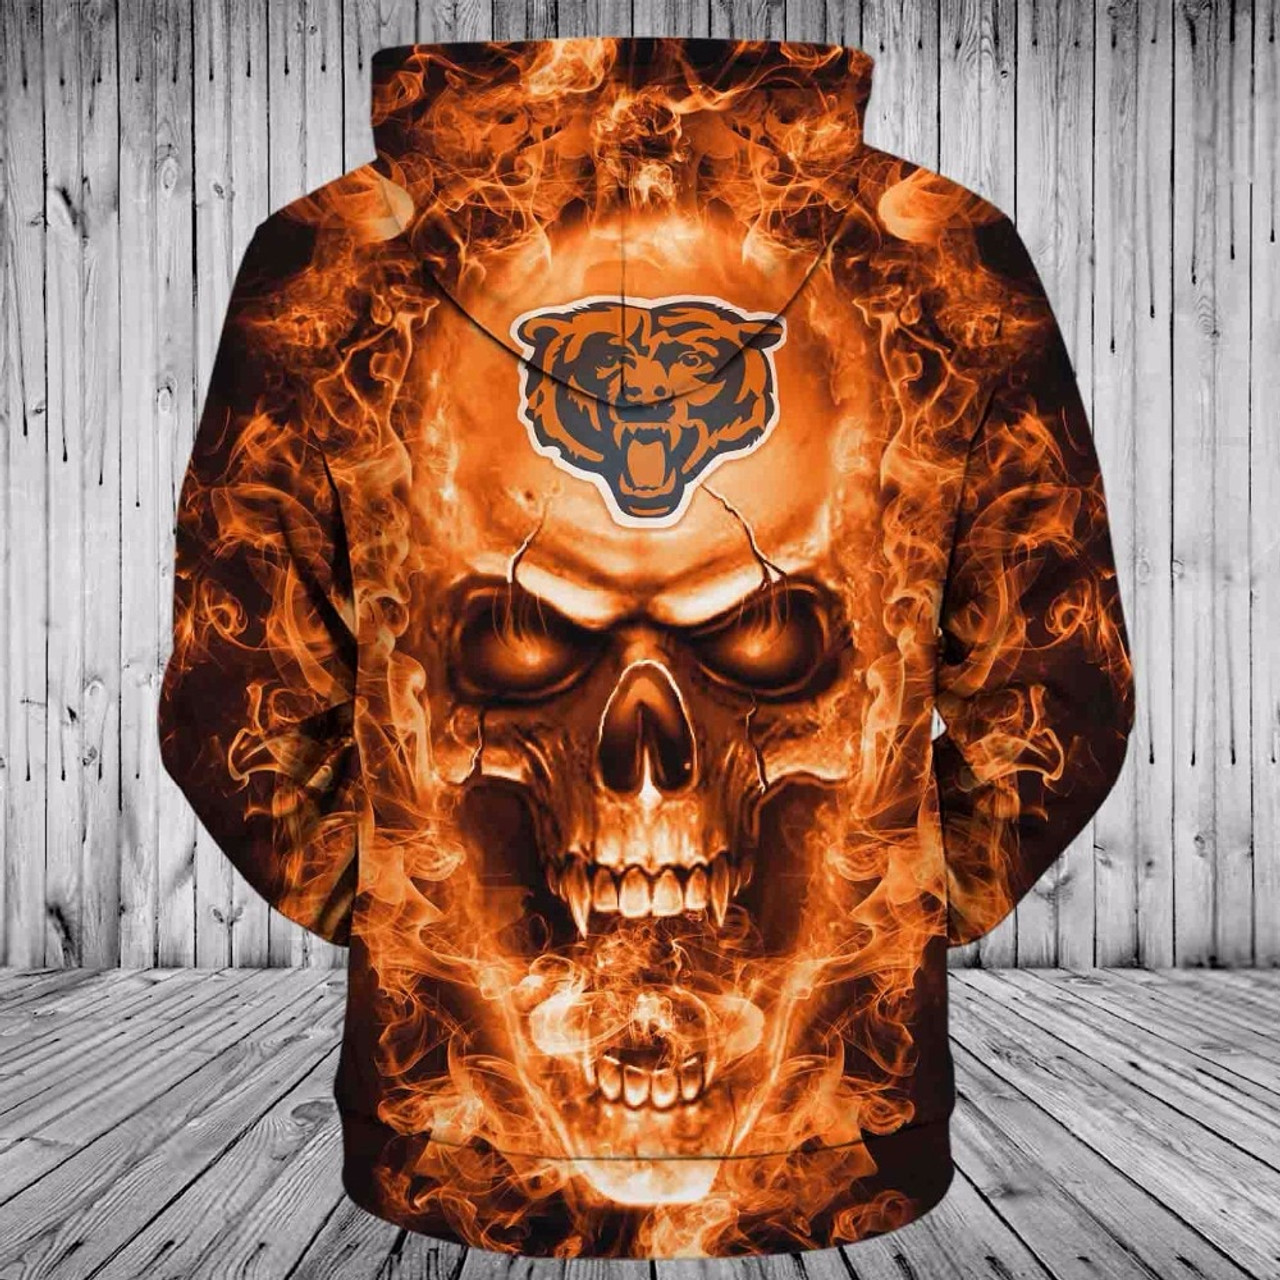 **(OFFICIAL-N.F.L.CHICAGO-BEARS-TEAM-NEON-SKULL-PULLOVER-HOODIES/CUSTOM-3D-NEON-GRAPHIC-PRINTED-DOUBLE-SIDED-ALL-OVER-OFFICIAL-BEARS-TEAM-LOGOS,IN-BEARS-TEAM-COLORS/WARM-PREMIUM-OFFICIAL-N.F.L.BEARS-TEAM-TRENDY-PULLOVER-POCKET-HOODIES)**